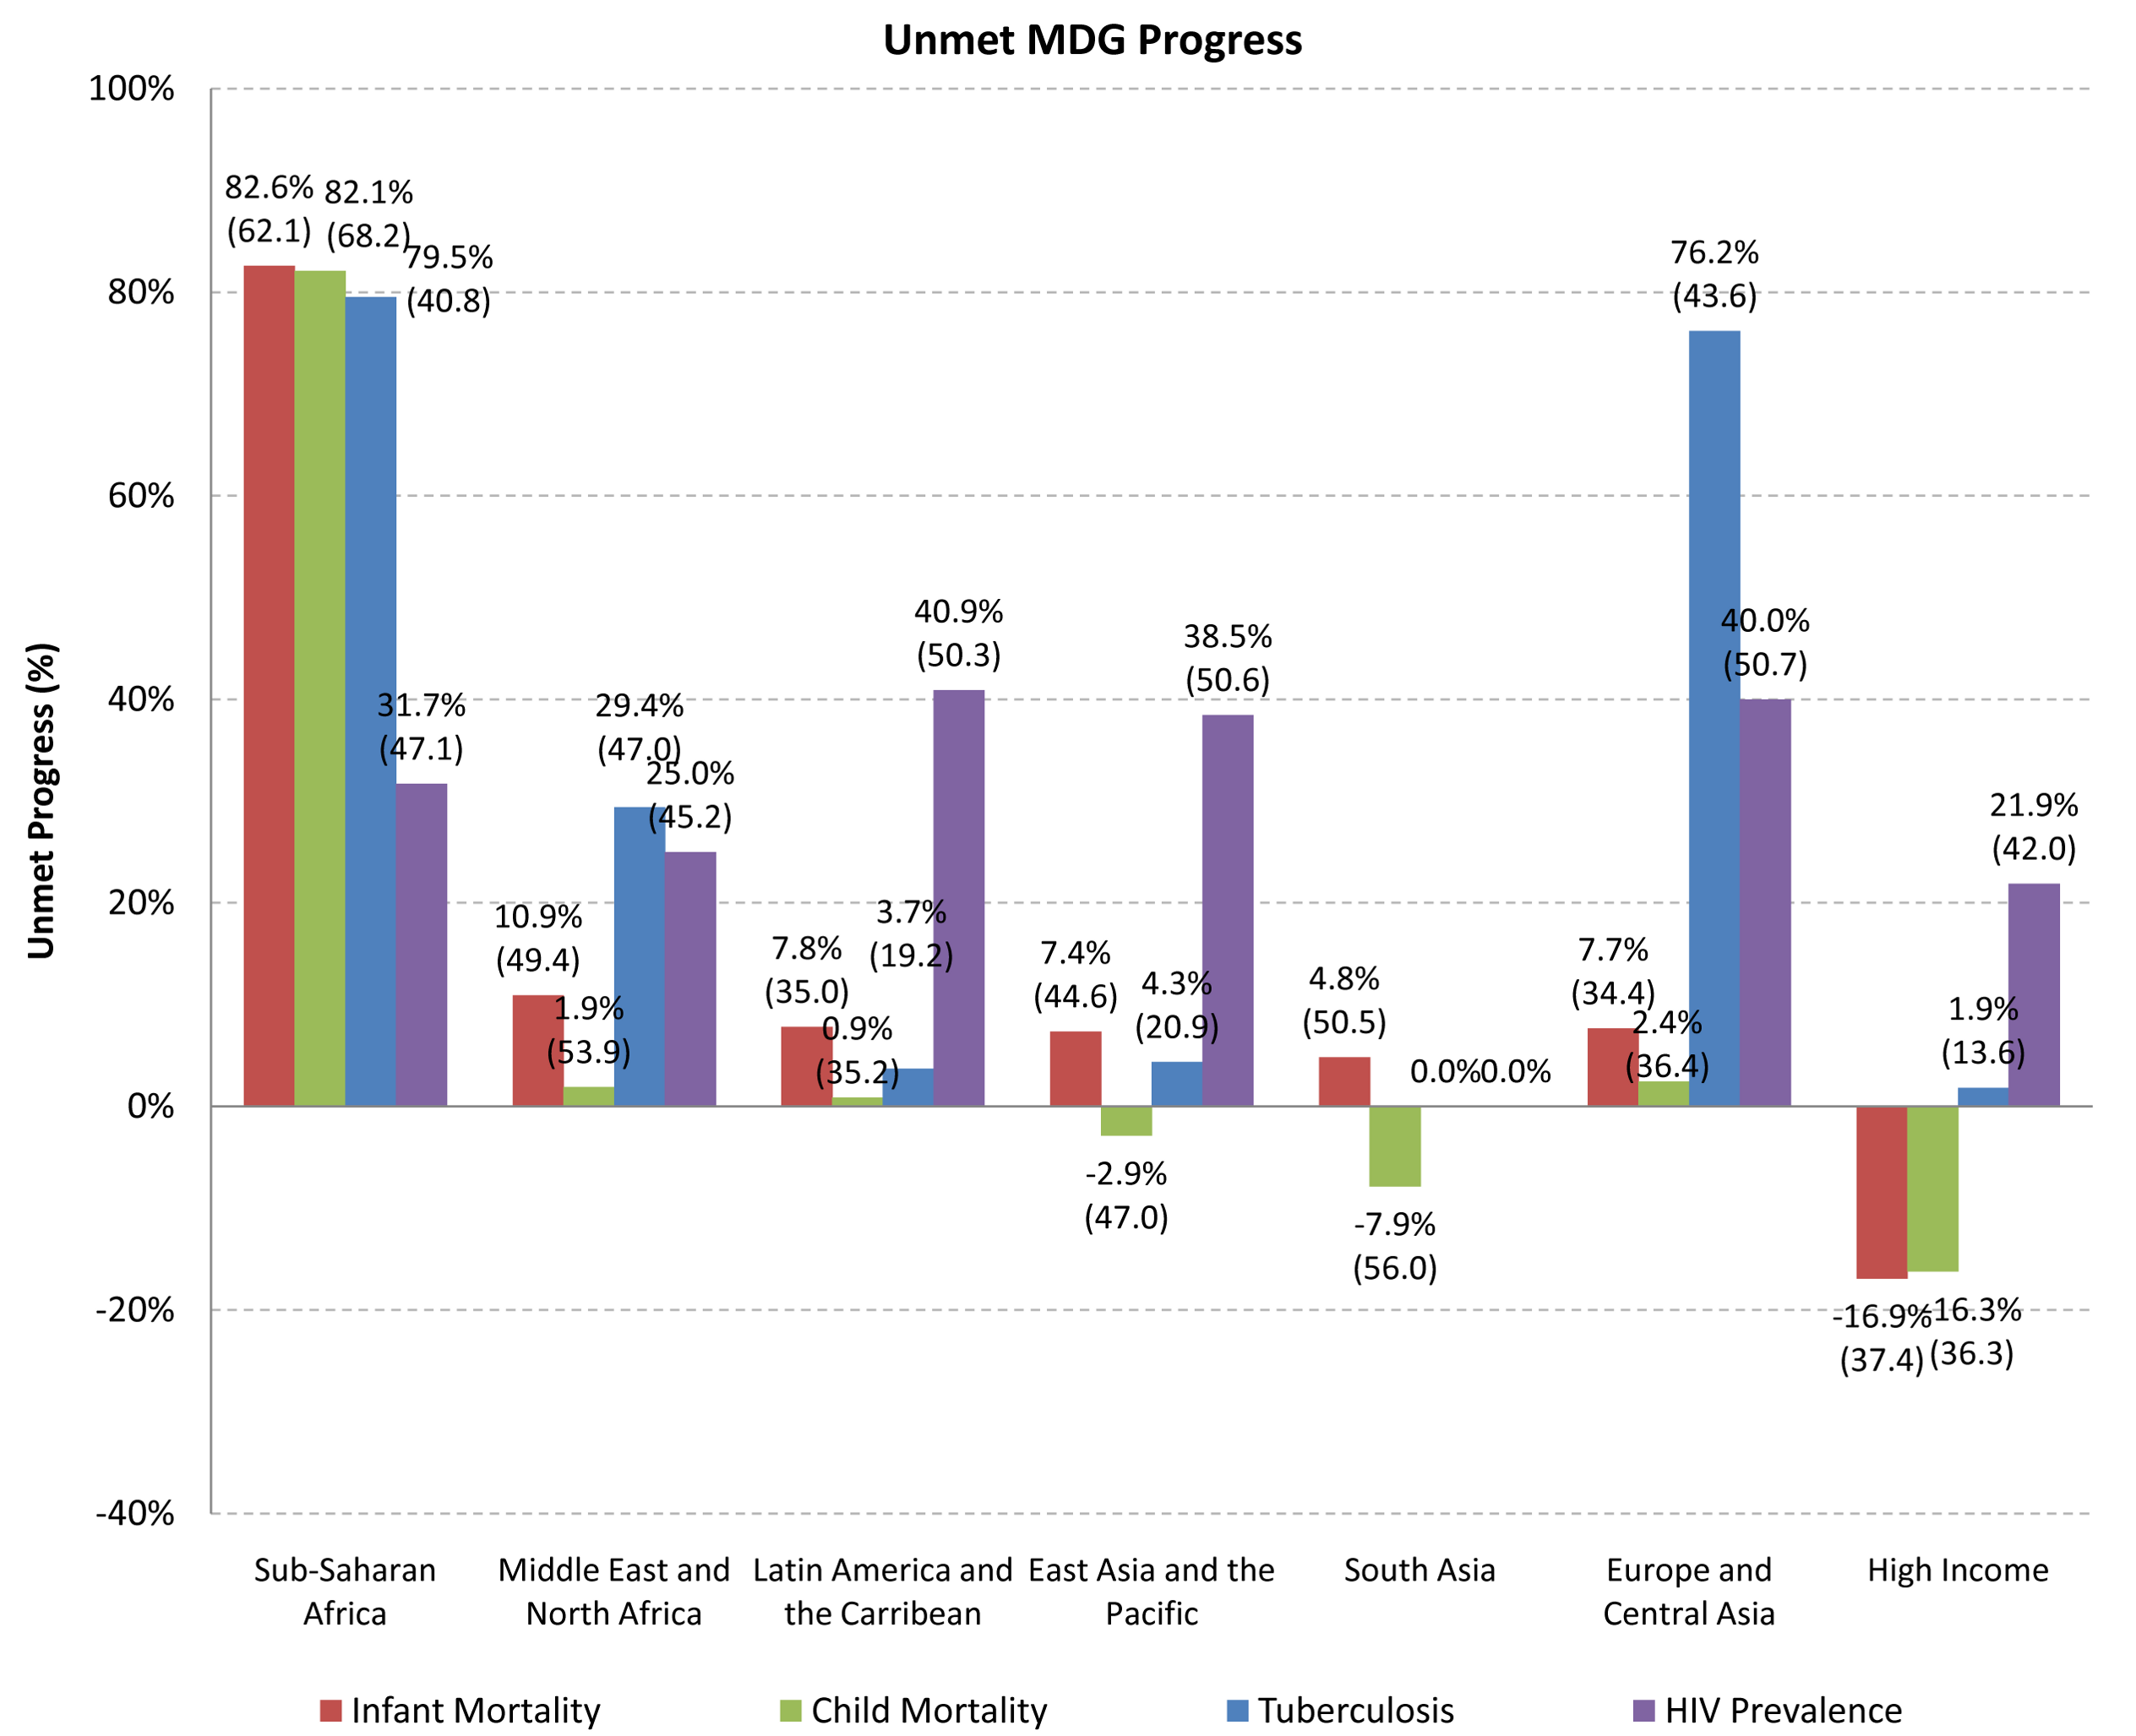 Unmet progress towards Millennium Development Goals, by geographic region.